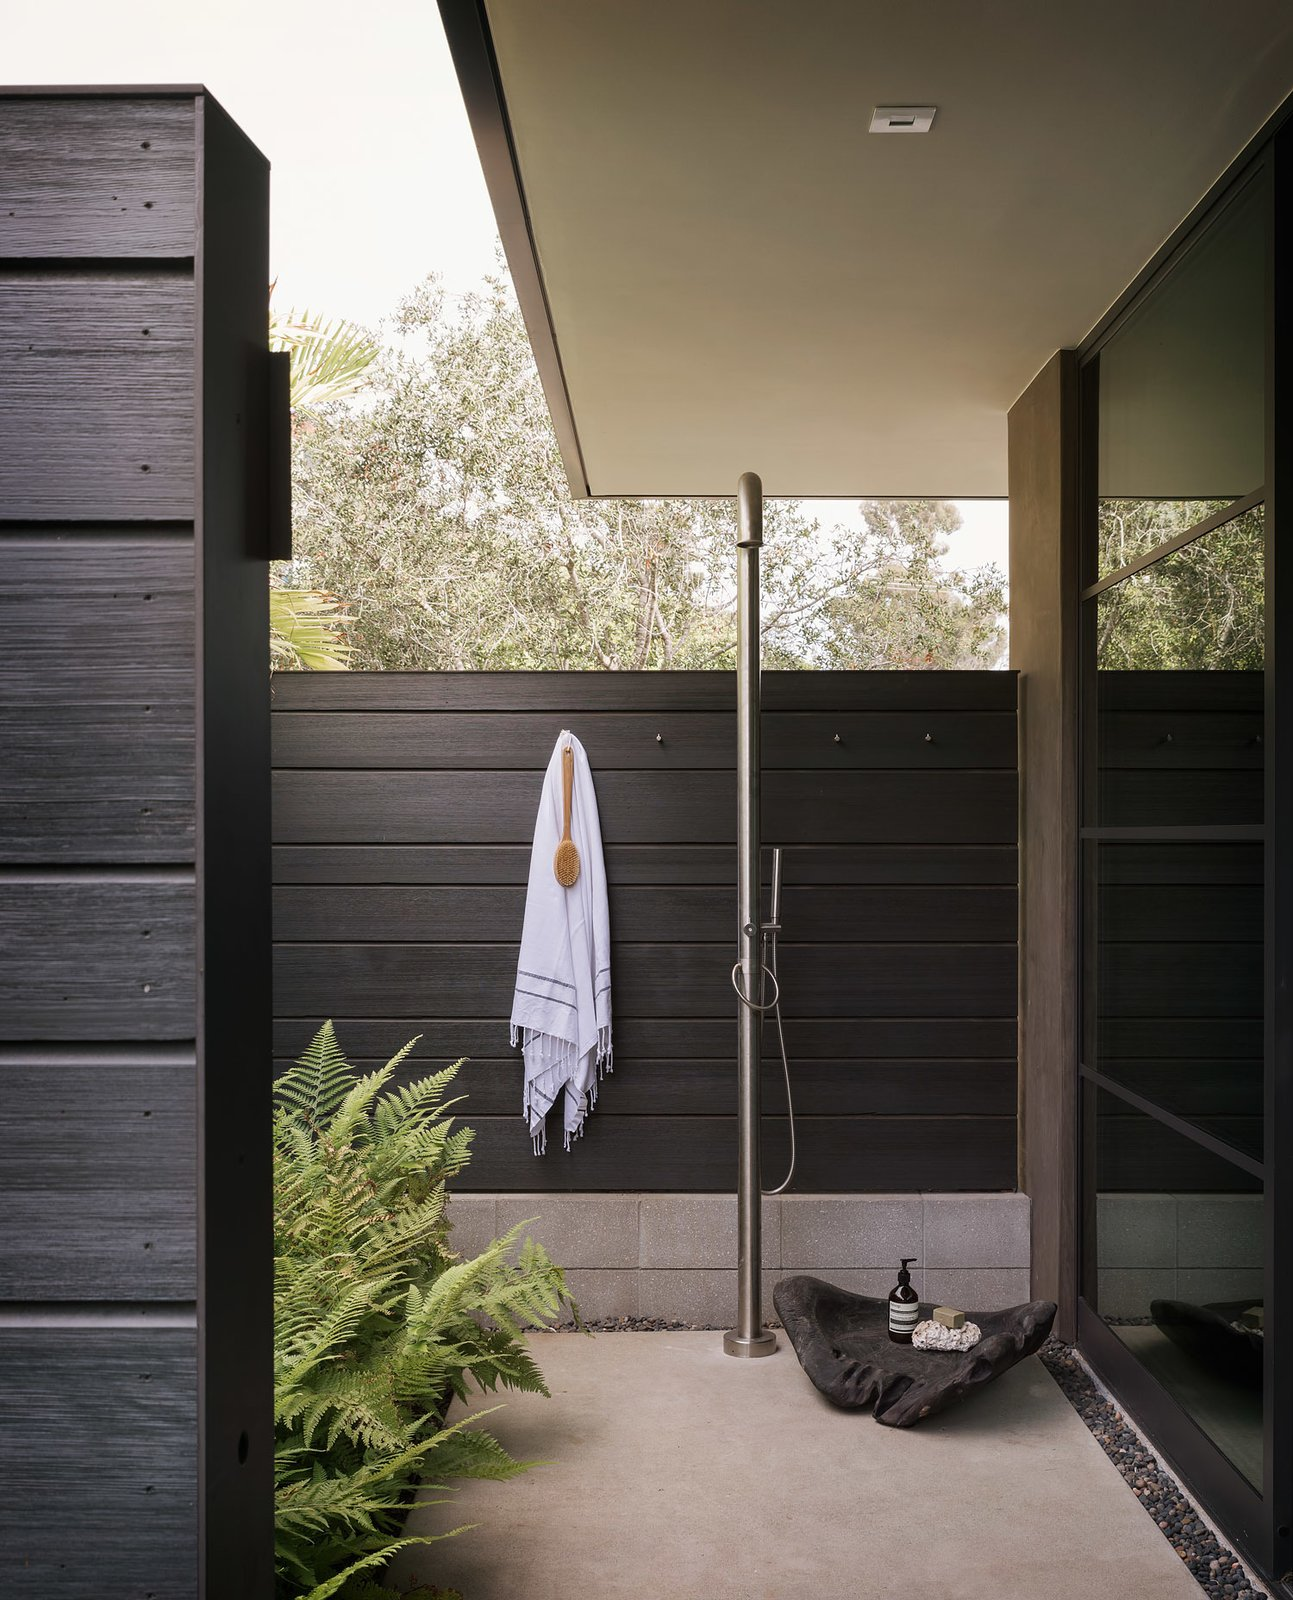 Outdoor and Shower Pools, Tubs, Shower A serene outdoor shower space is surrounded by shou sugi ban wood.  Photos from A Southern California Midcentury Gets a Serene, Japanese-Inspired Treatment